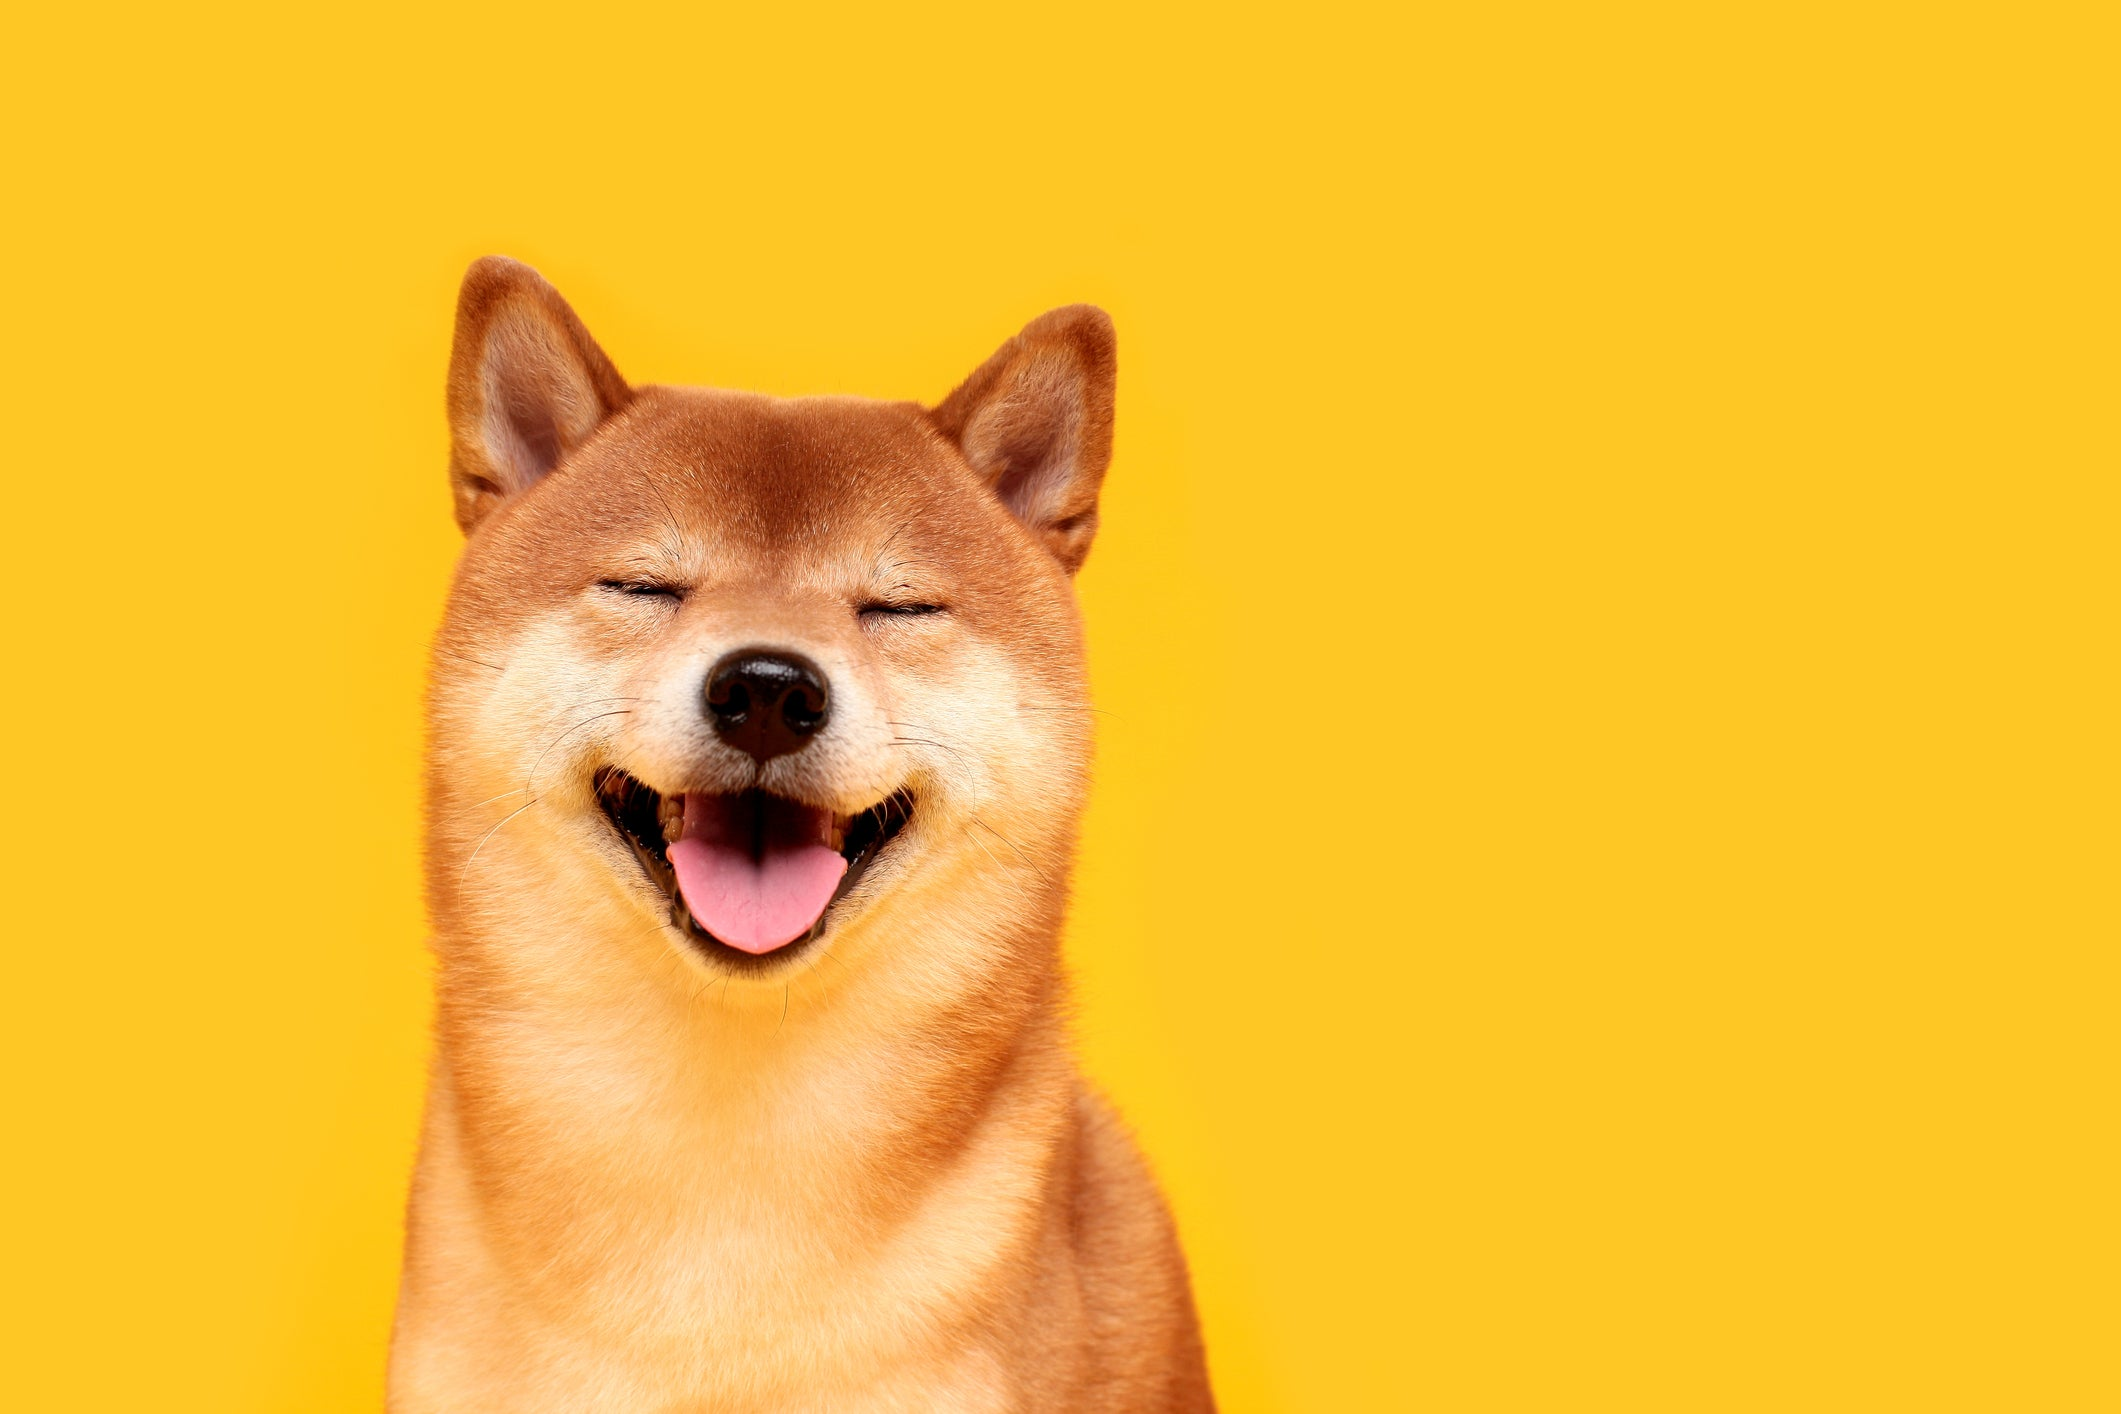 Forget Dogecoin: 3 Vanguard ETFs That Could Make You a Millionaire